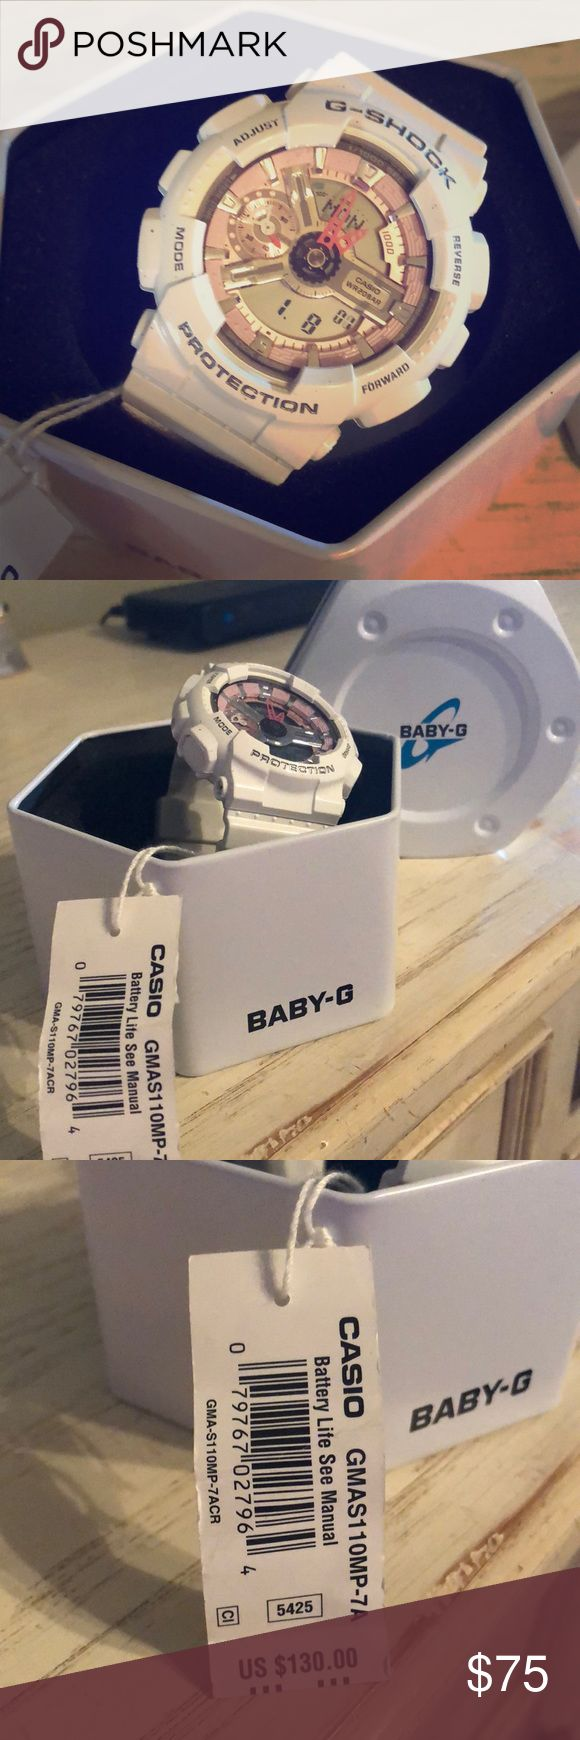 Casio Baby G Shock Watch Beautiful Casio Baby G shock watch   White  NWT   Case included Casio Accessories Watches